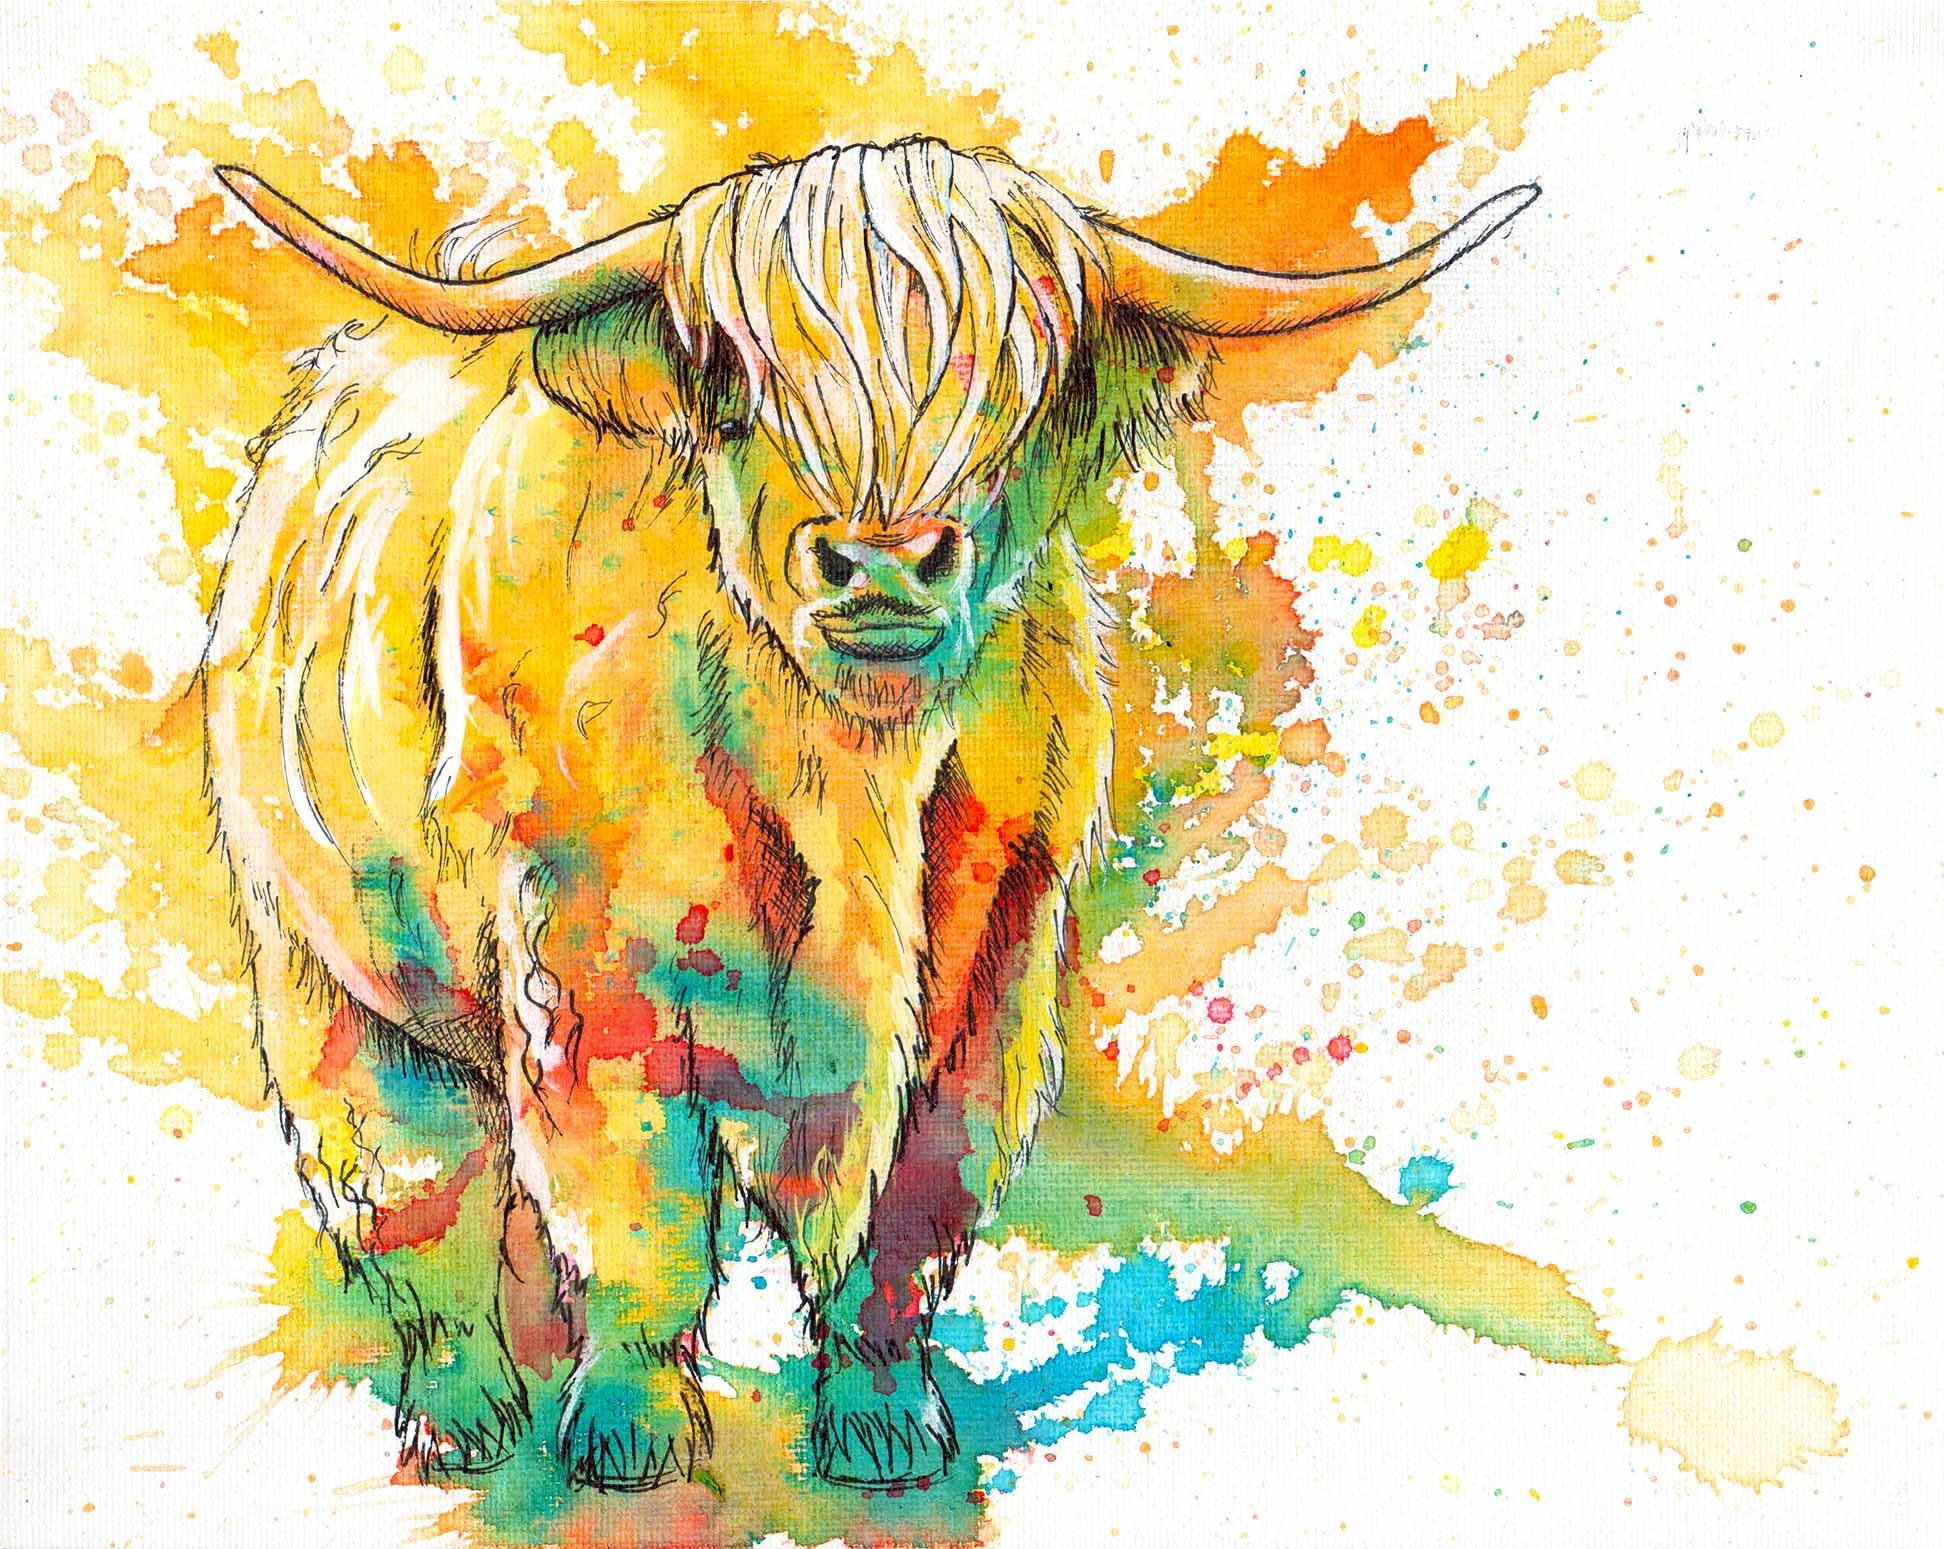 Highland Cow Original Painting 8x10 small and colorful canvas